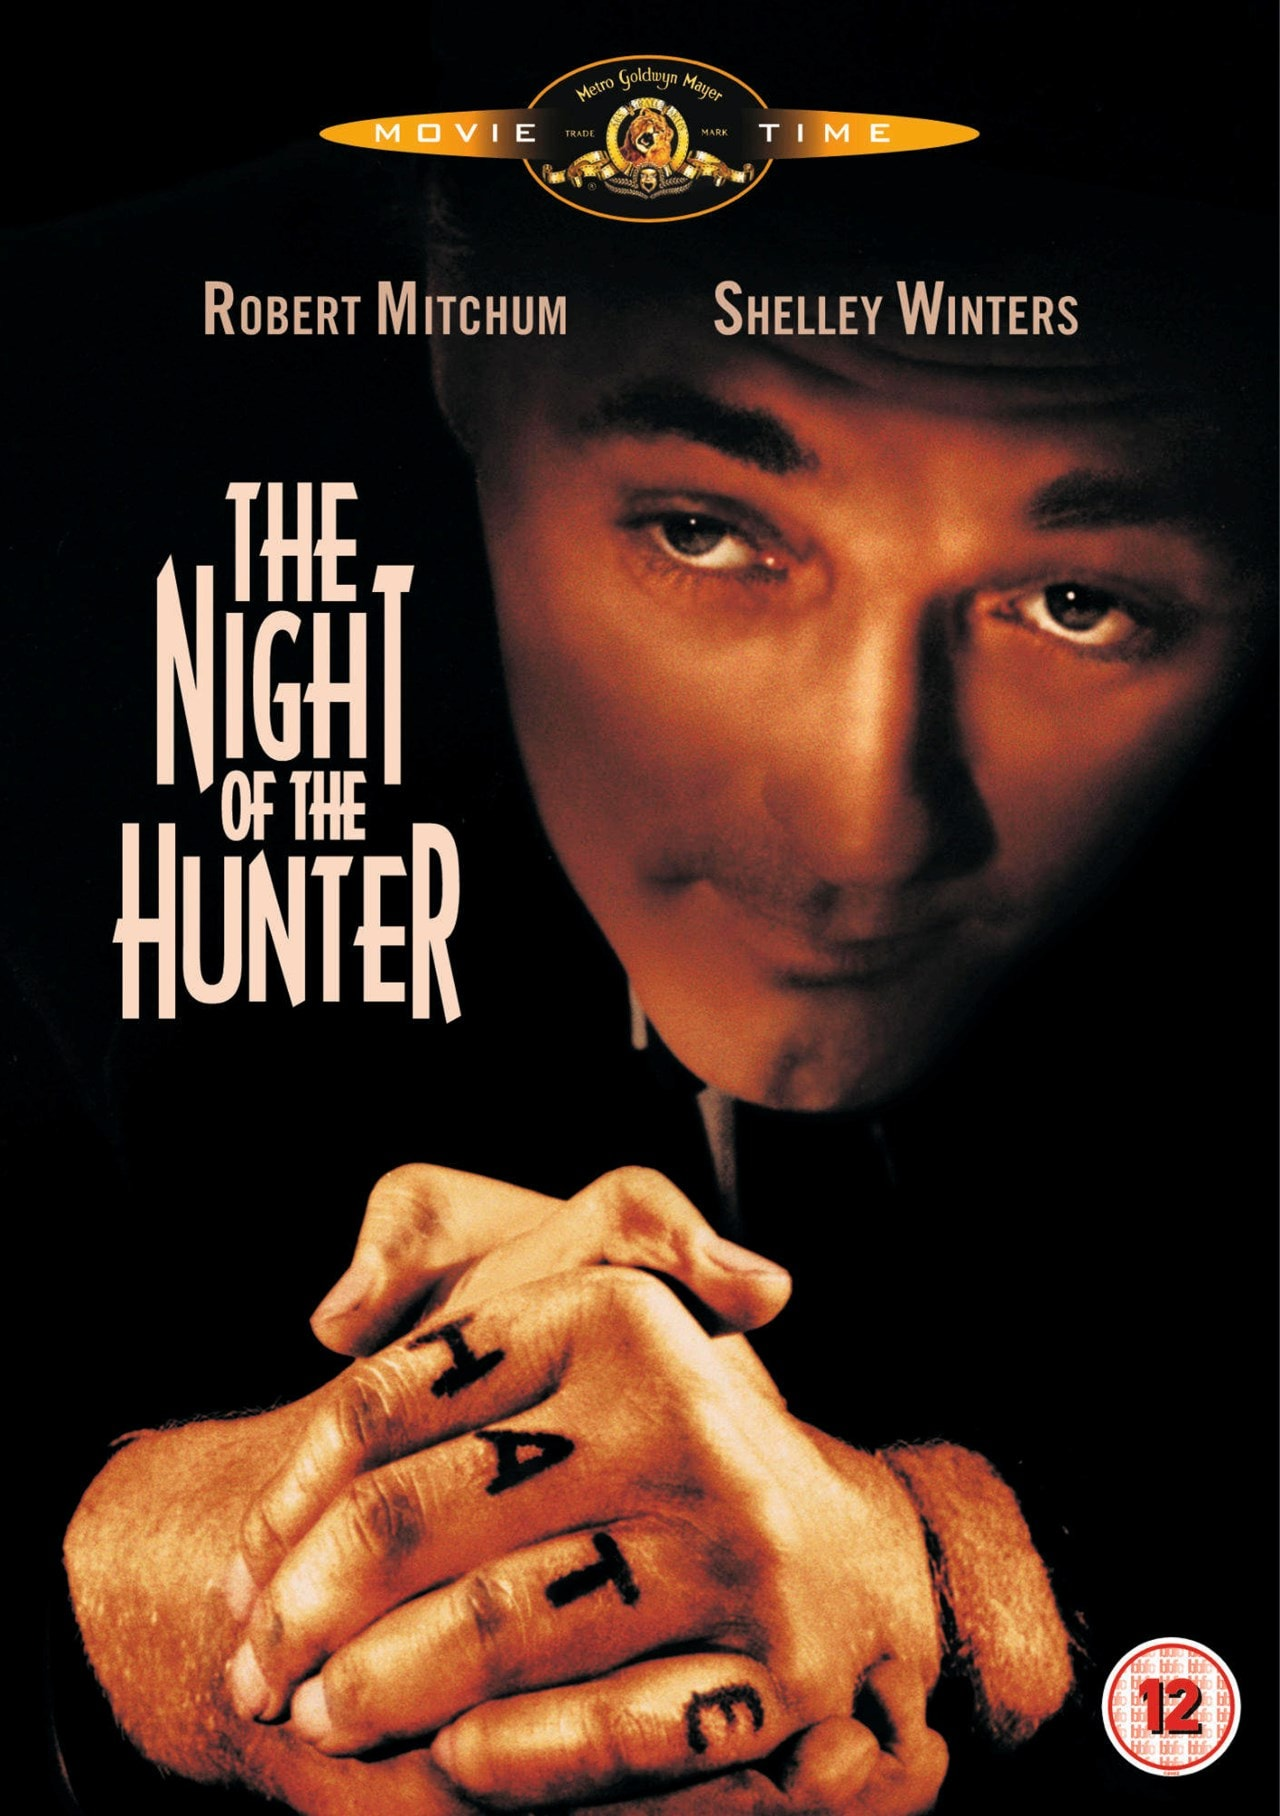 The Night of the Hunter - 1